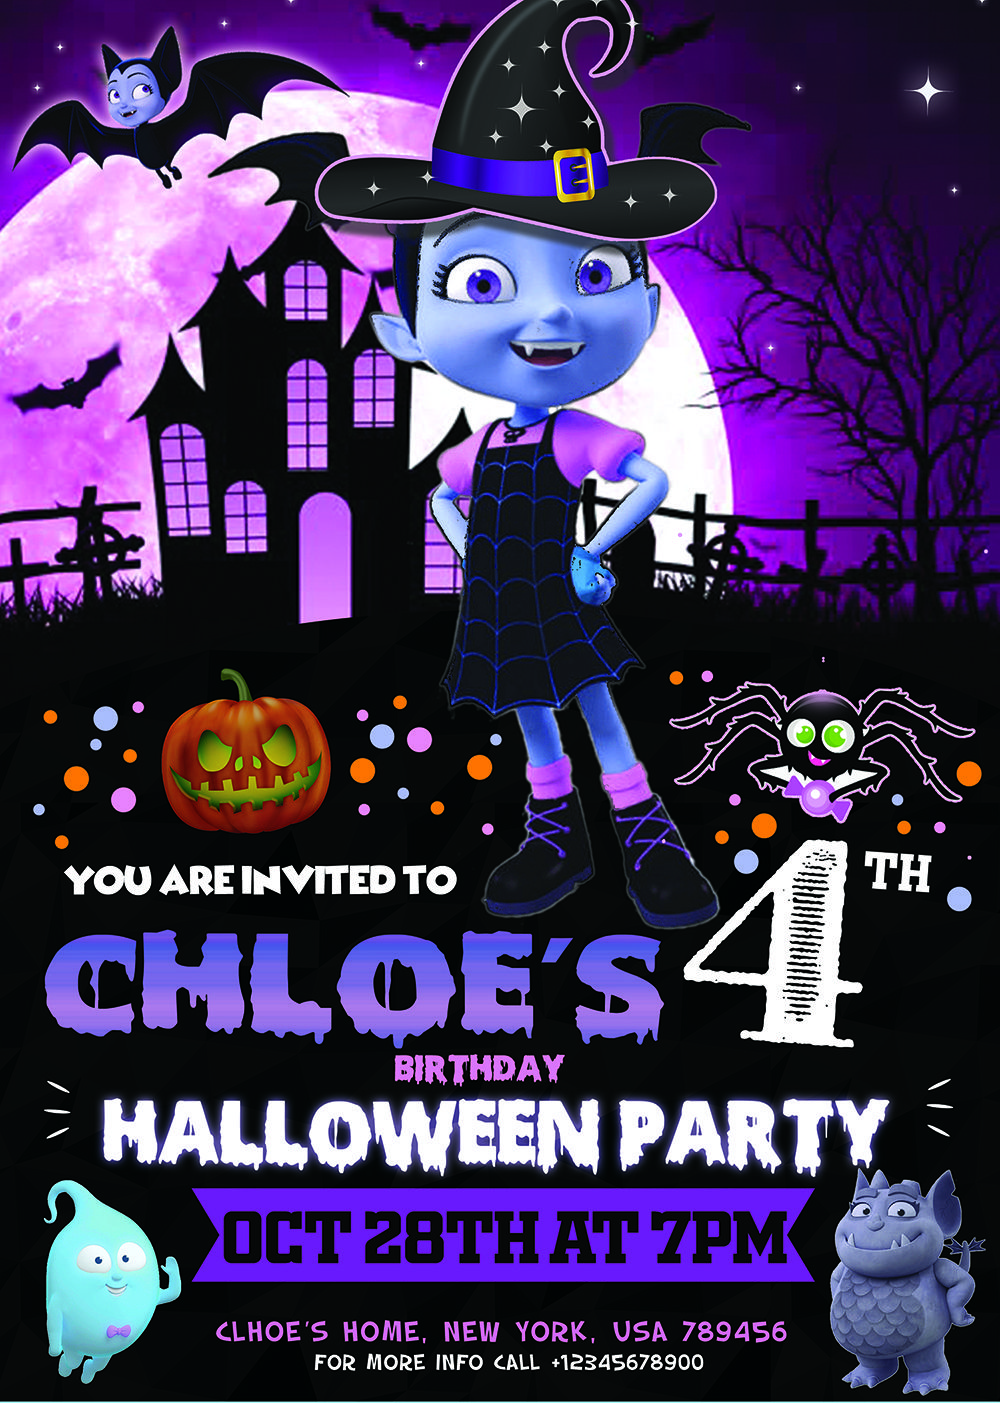 Vampirina Halloween Party 2020 Ny VAMPIRINA HALLOWEEN BIRTHDAY INVITATION | Halloween birthday